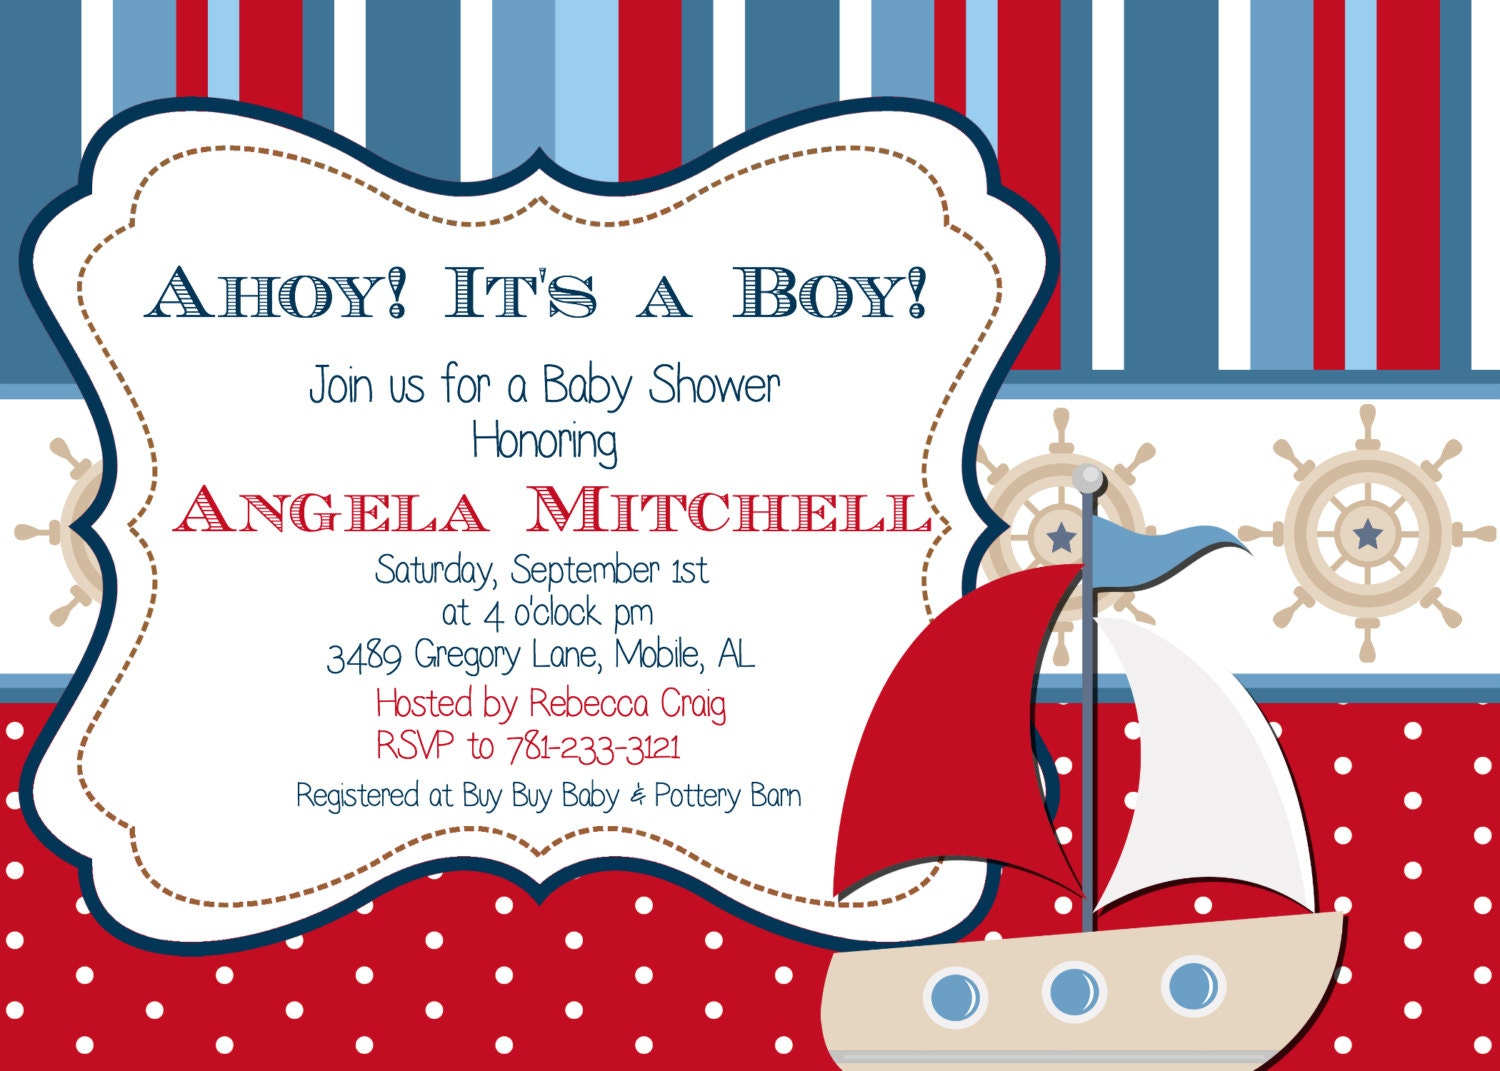 NAUTICAL BABY SHOWER INVITATIONS WALMART | baby shower nautical